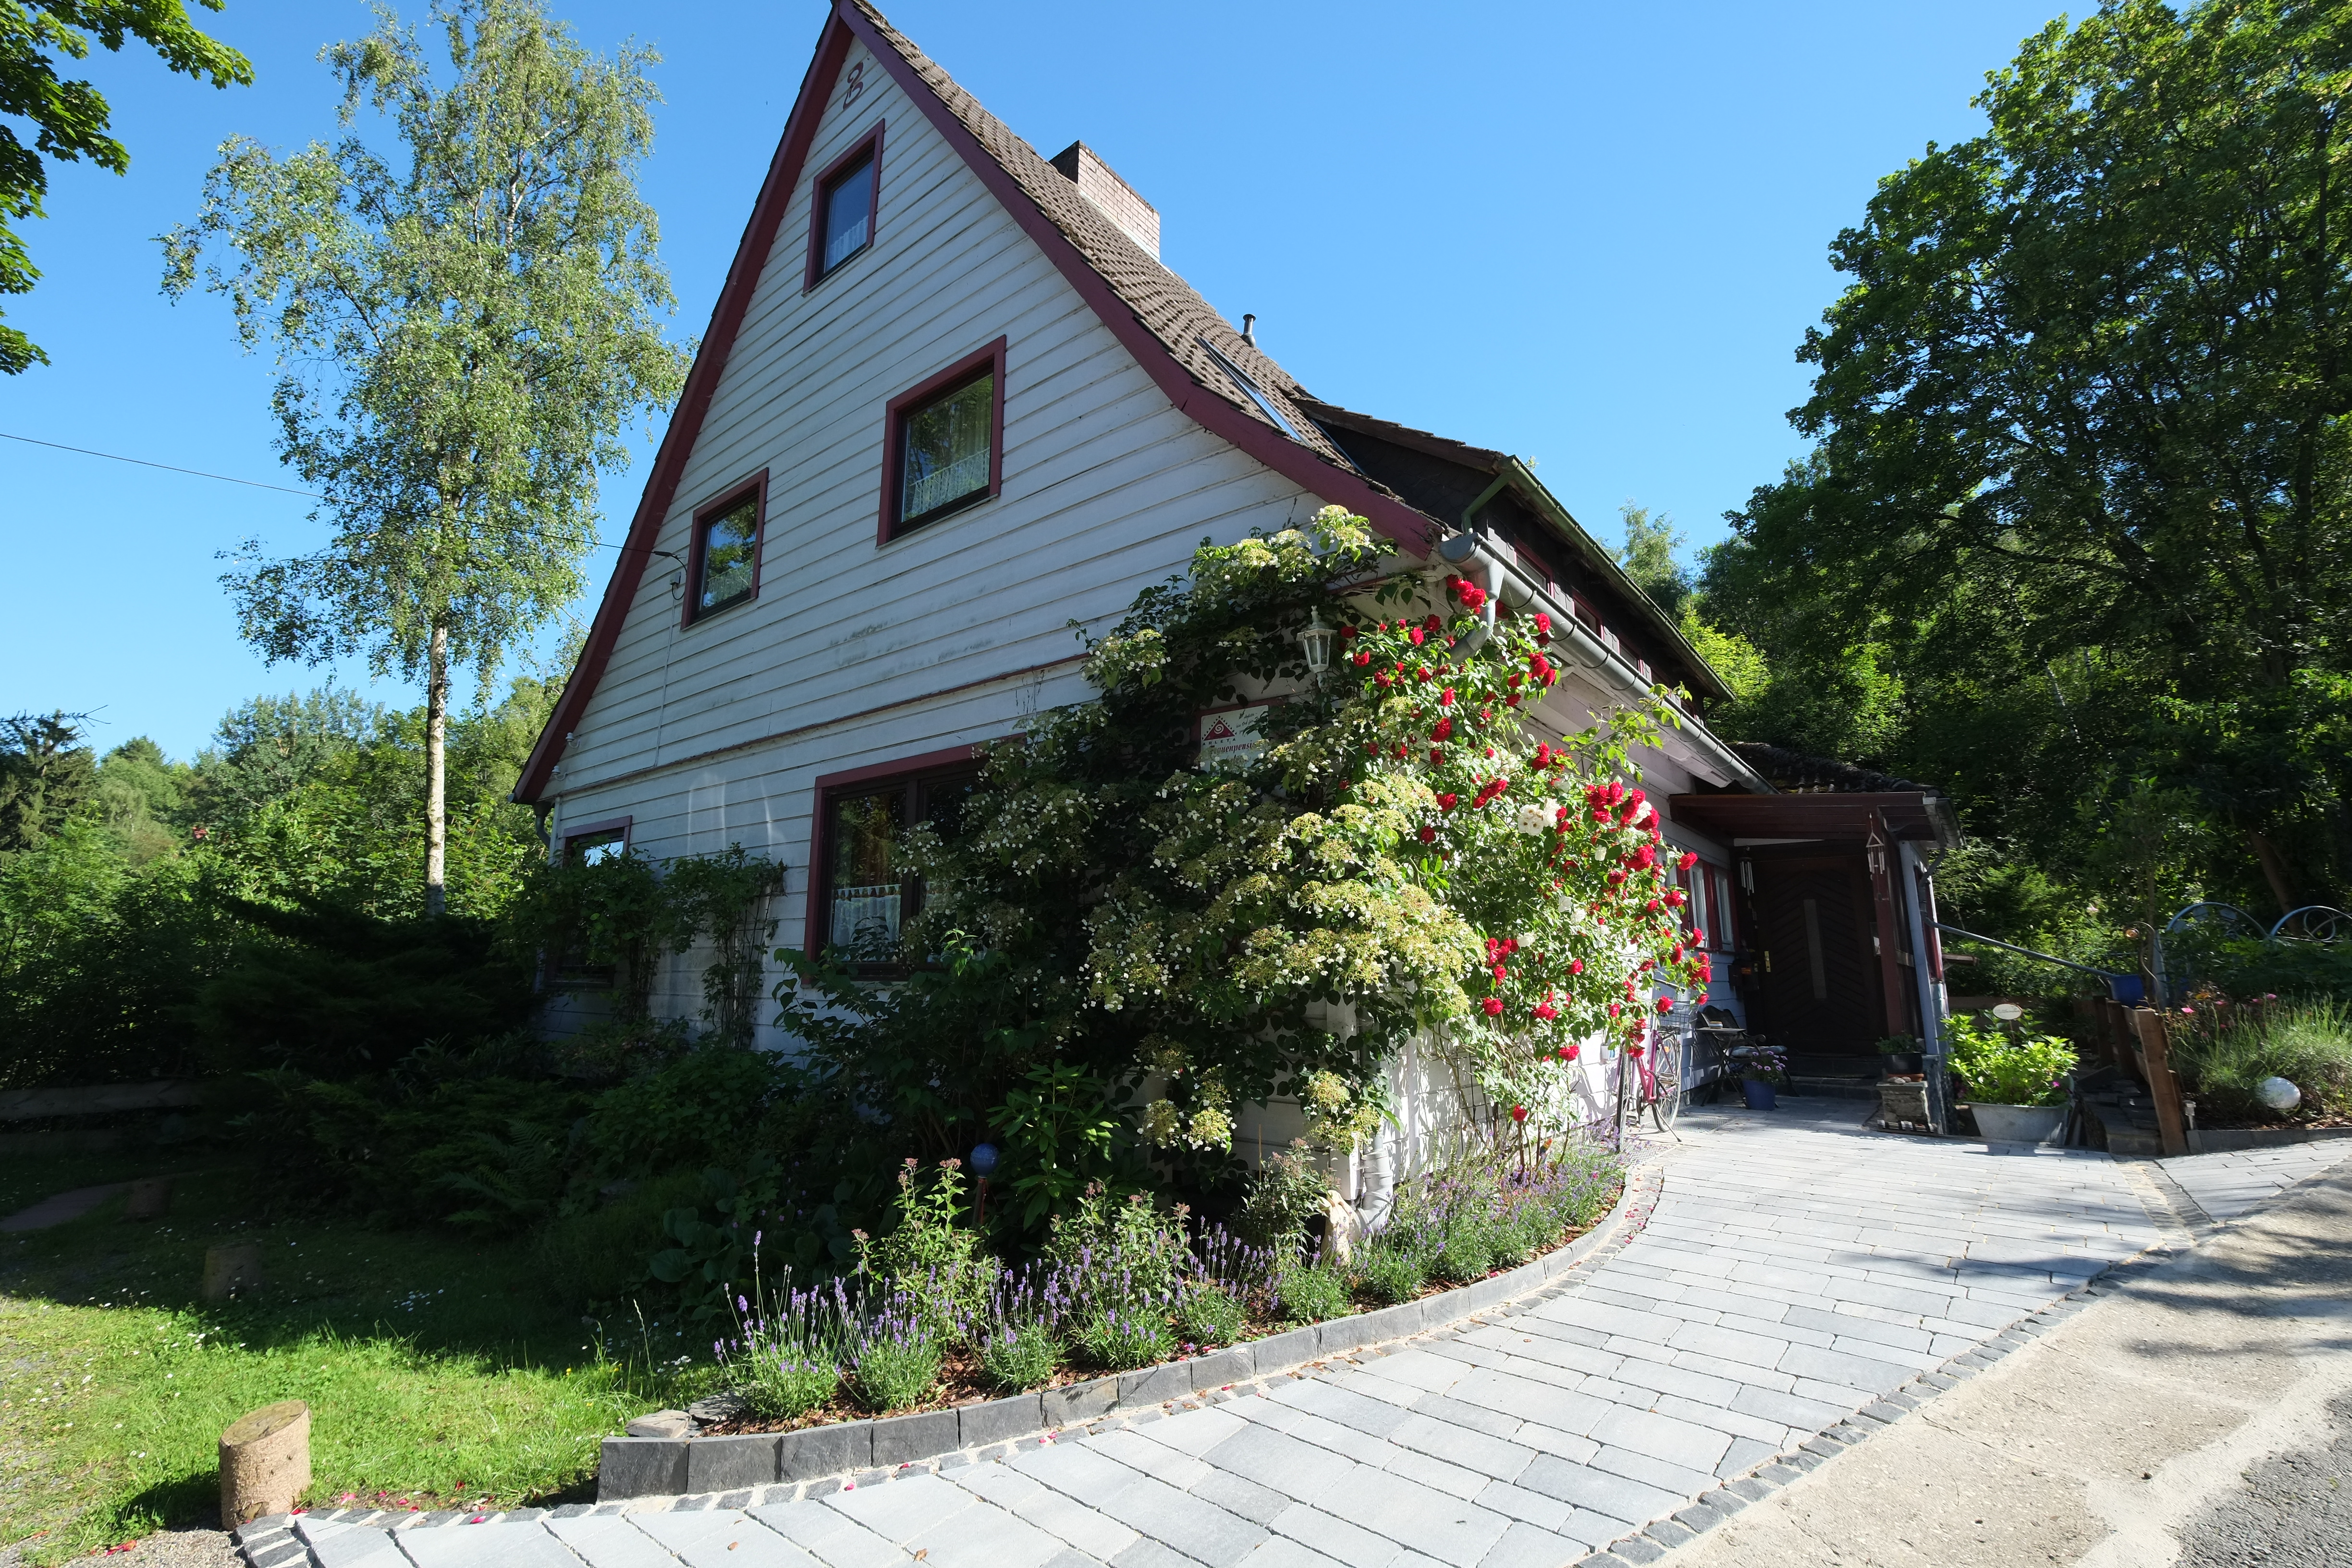 Frauenpension Arleta im Harz